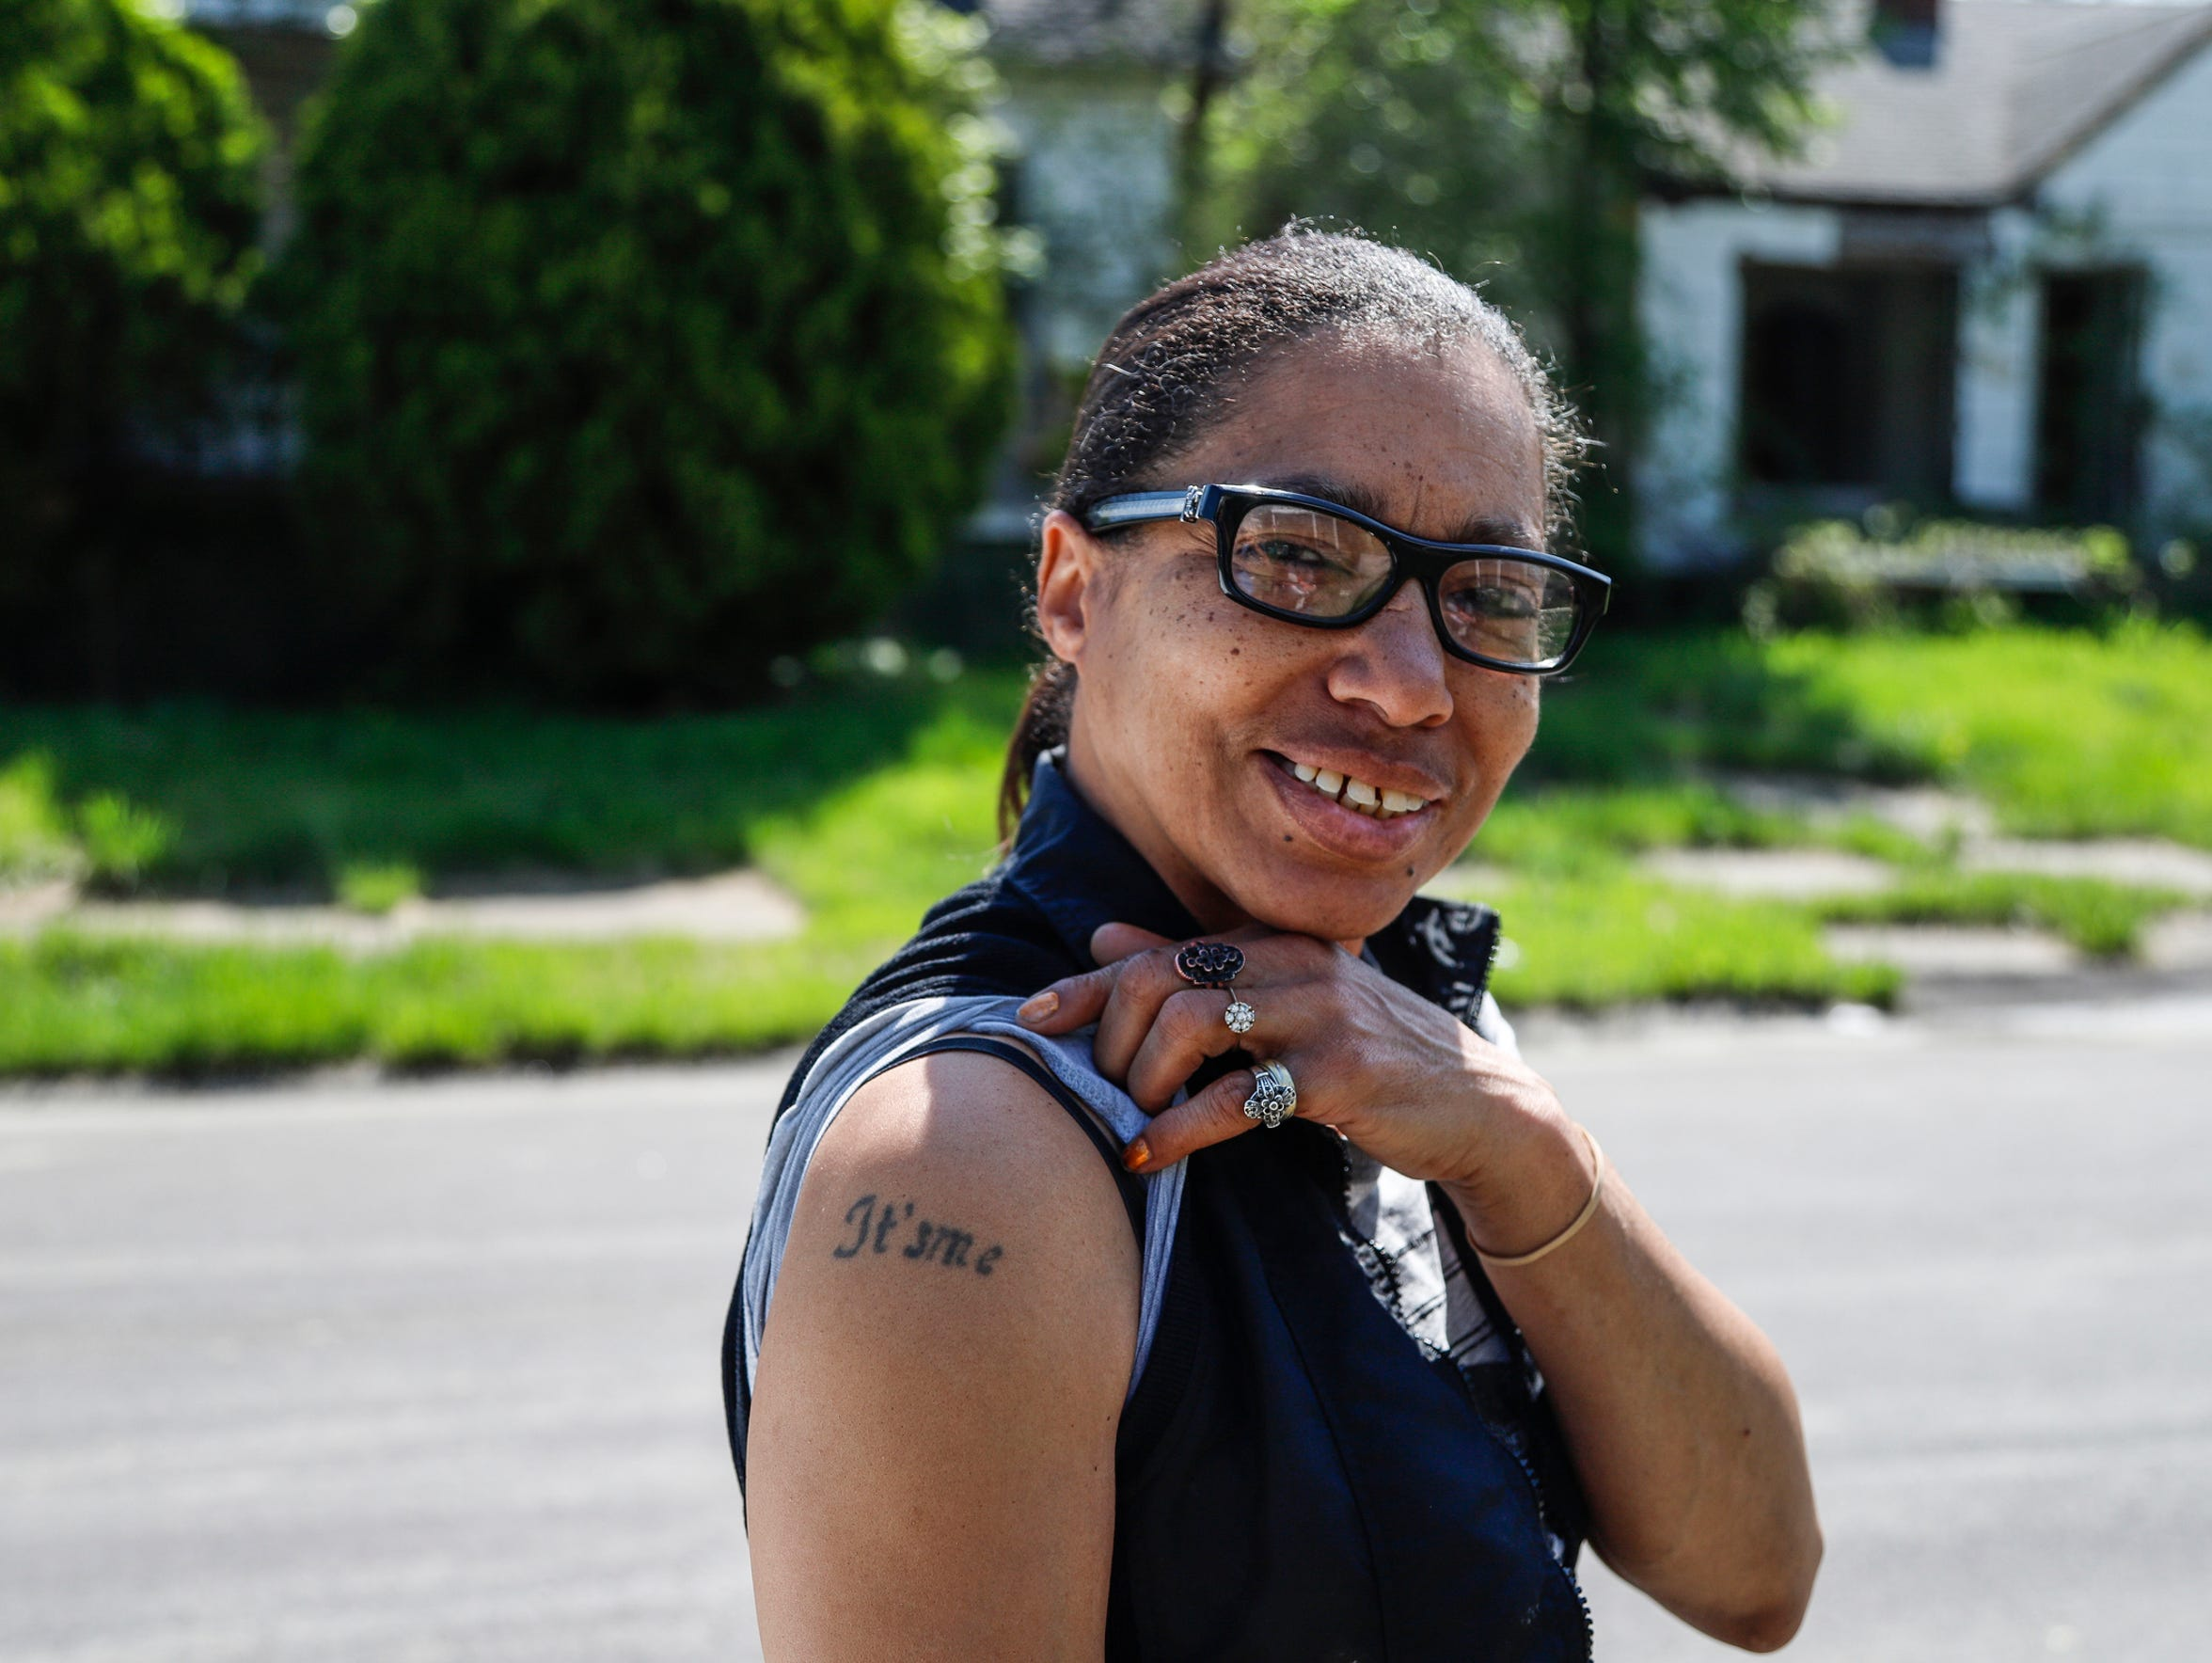 Alpine Street resident Aquin Hill in May shows off a tattoo of her nickname on her right arm. (Photo taken May 17, 2018)